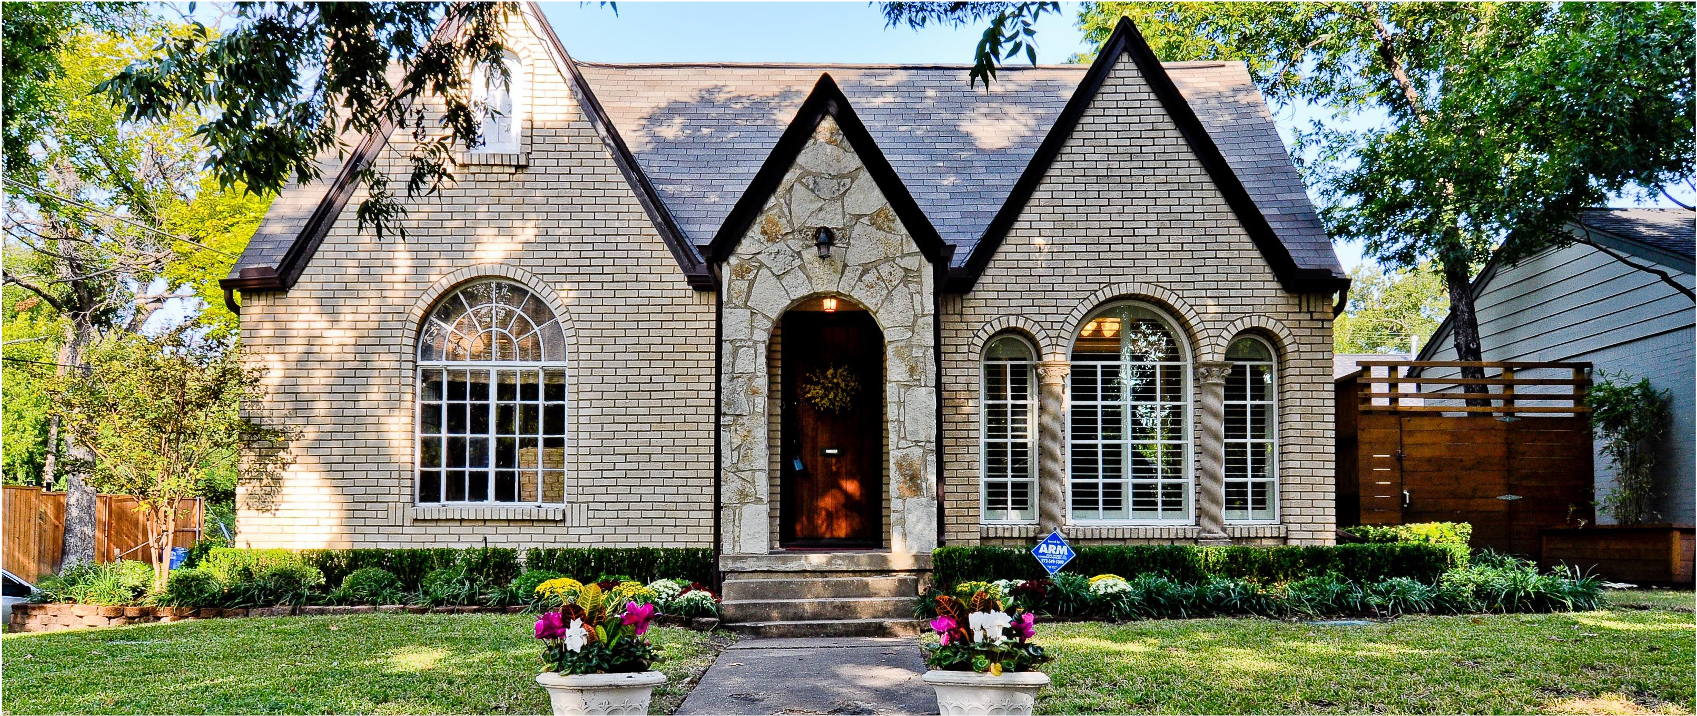 https://livingwayproperties.com/wp-content/uploads/2021/05/sell-my-home-in-dallas-fast-for-cash.png